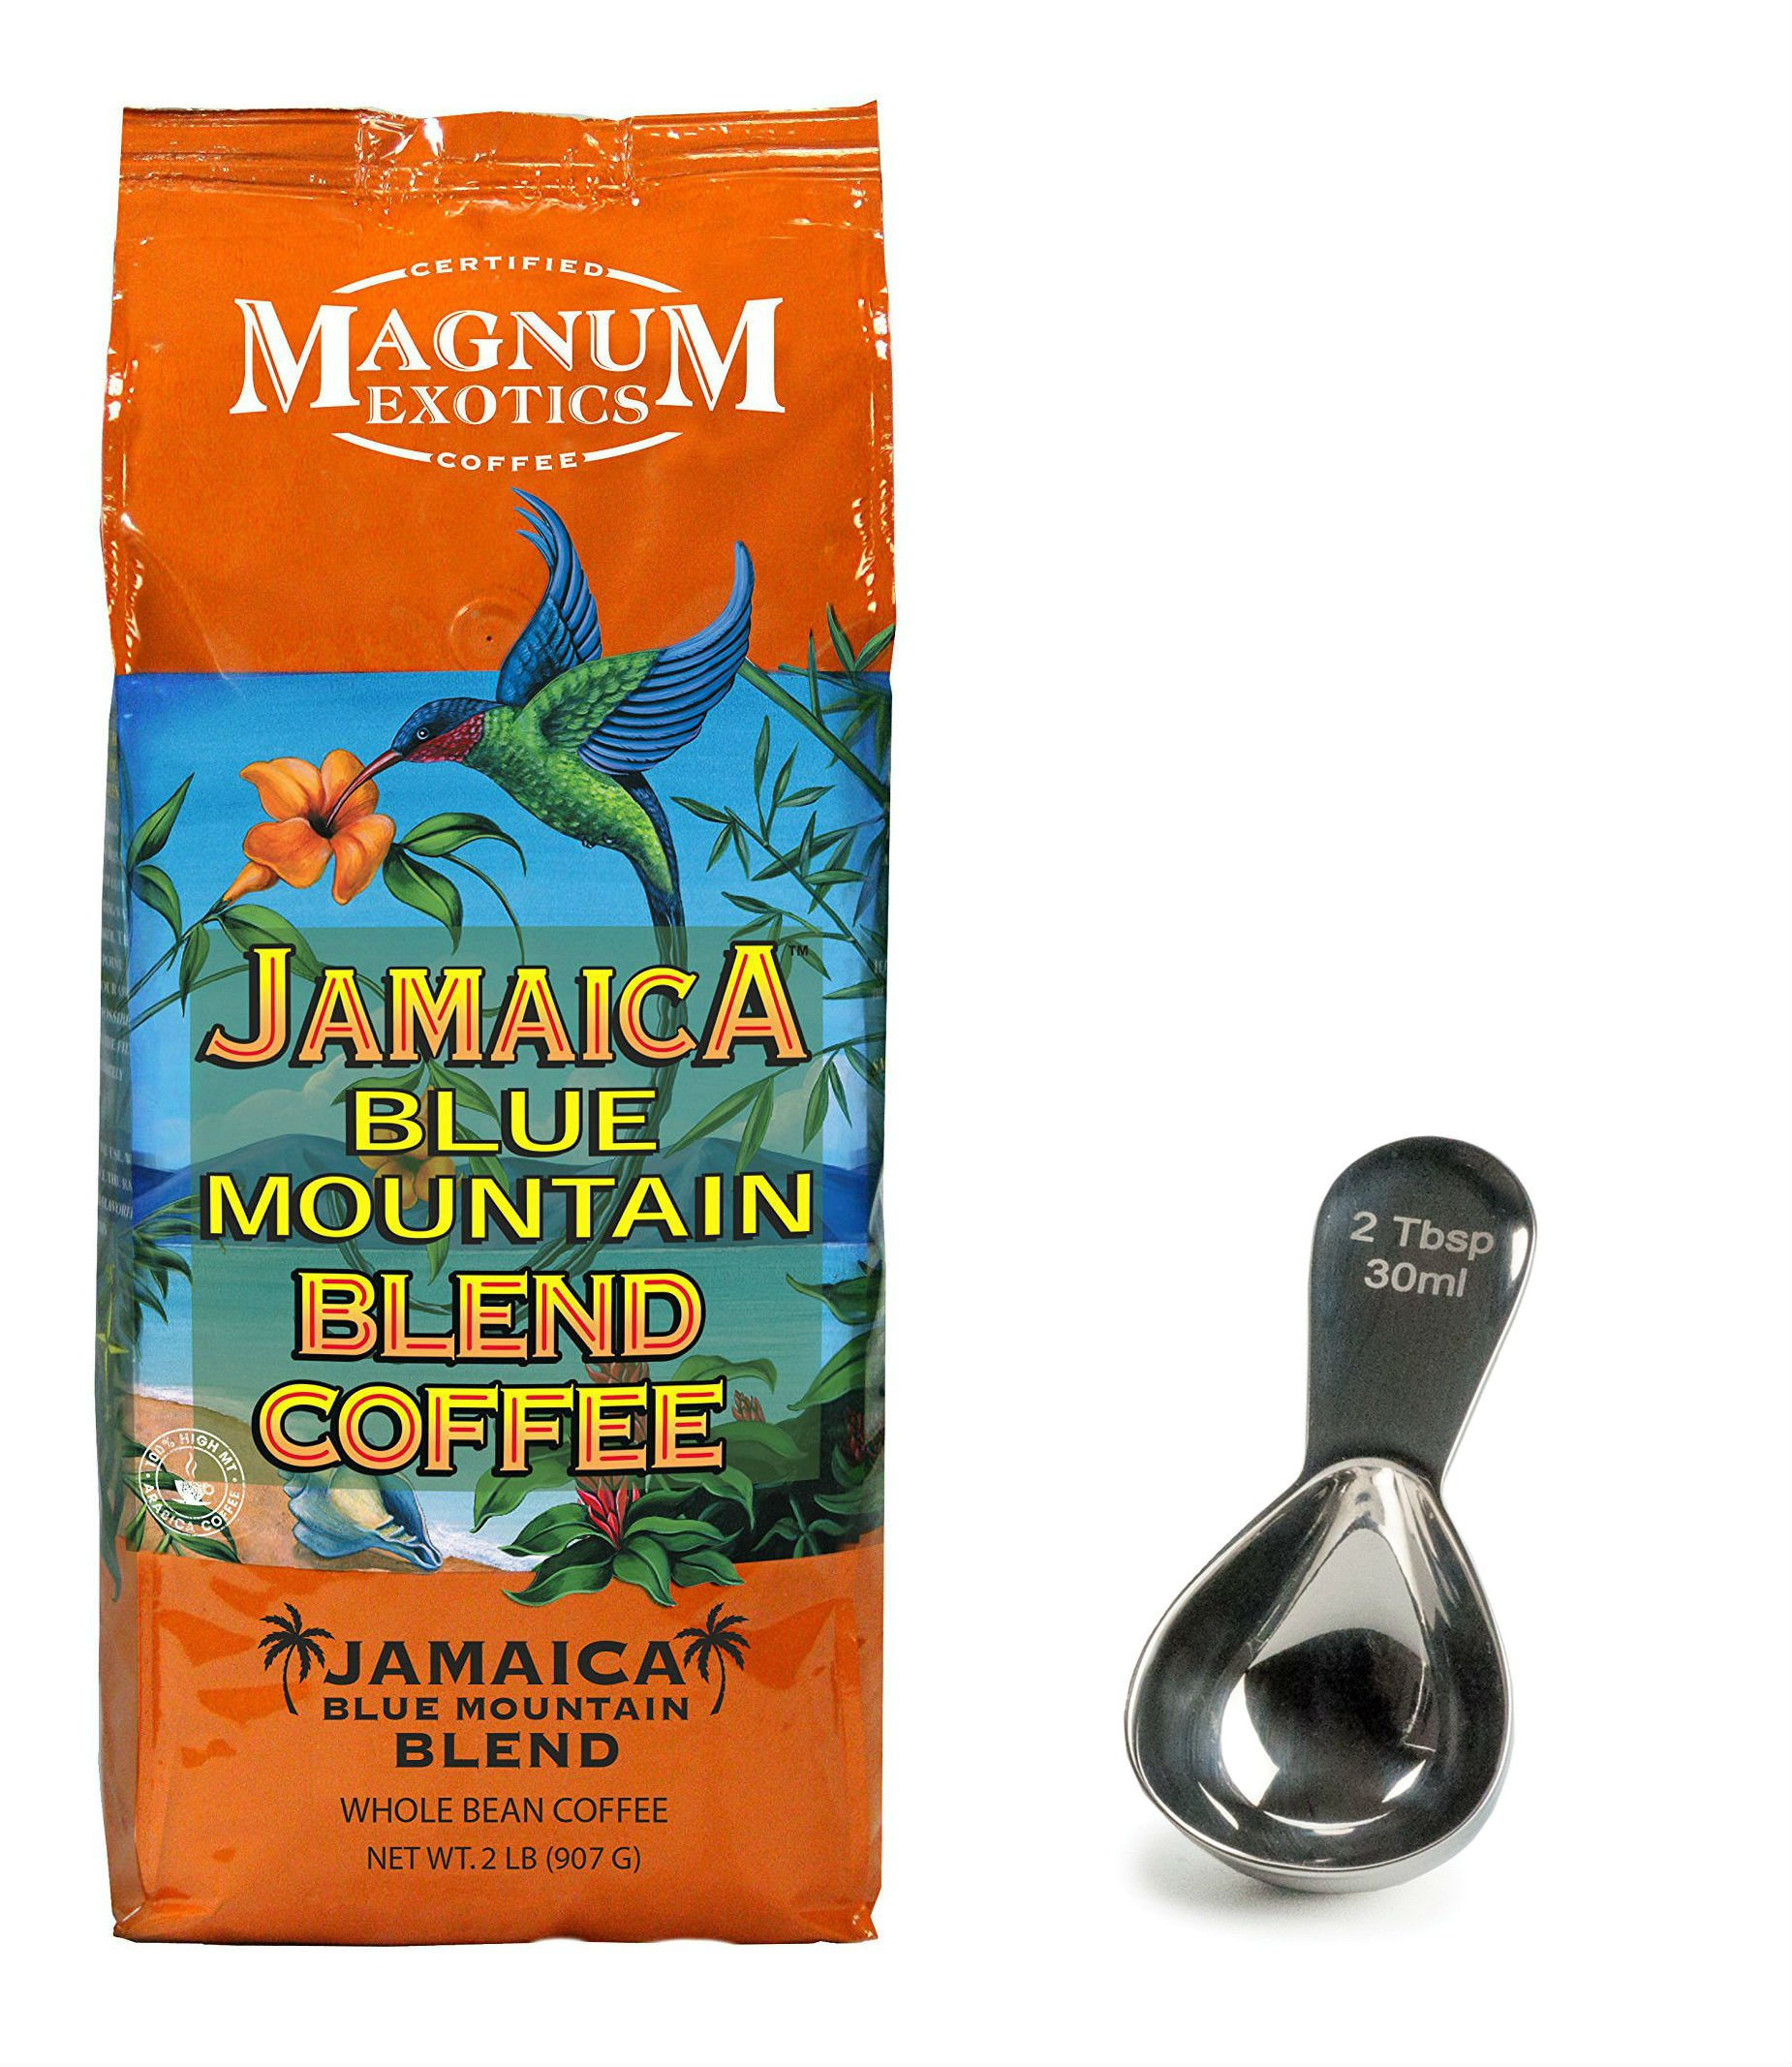 Magnum Jamaican Blue Mountain Whole Bean Coffee(32 oz) and Stainless Steel Coffee Scoop Bundle